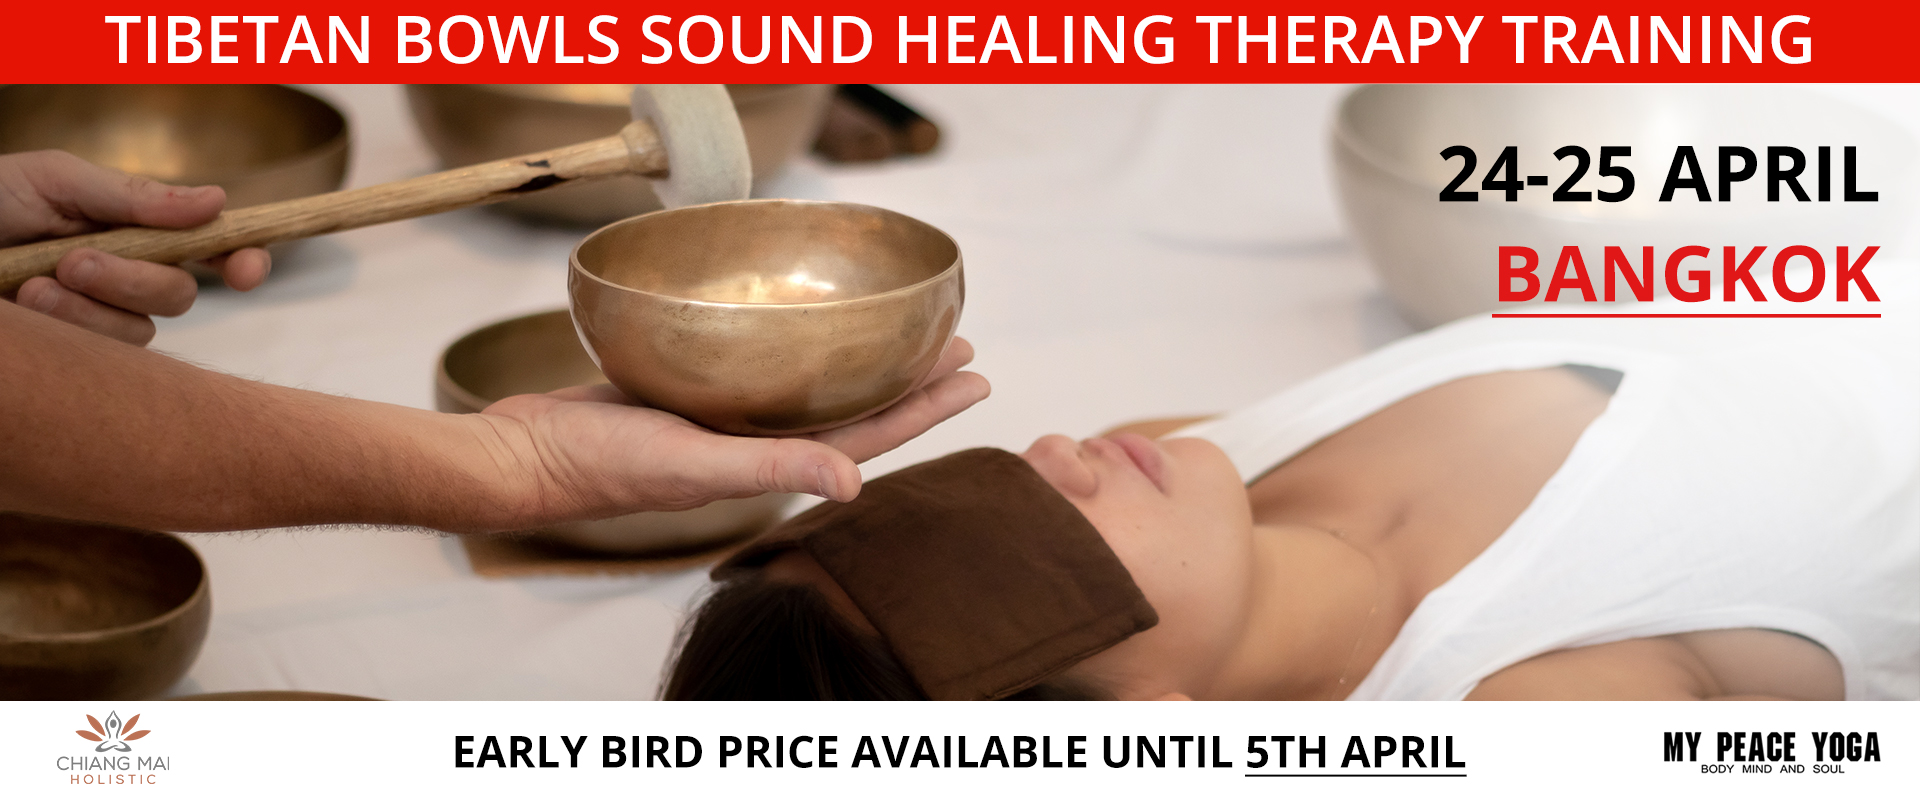 Tibetan Bowls Sound Sound Healing Therapy Training